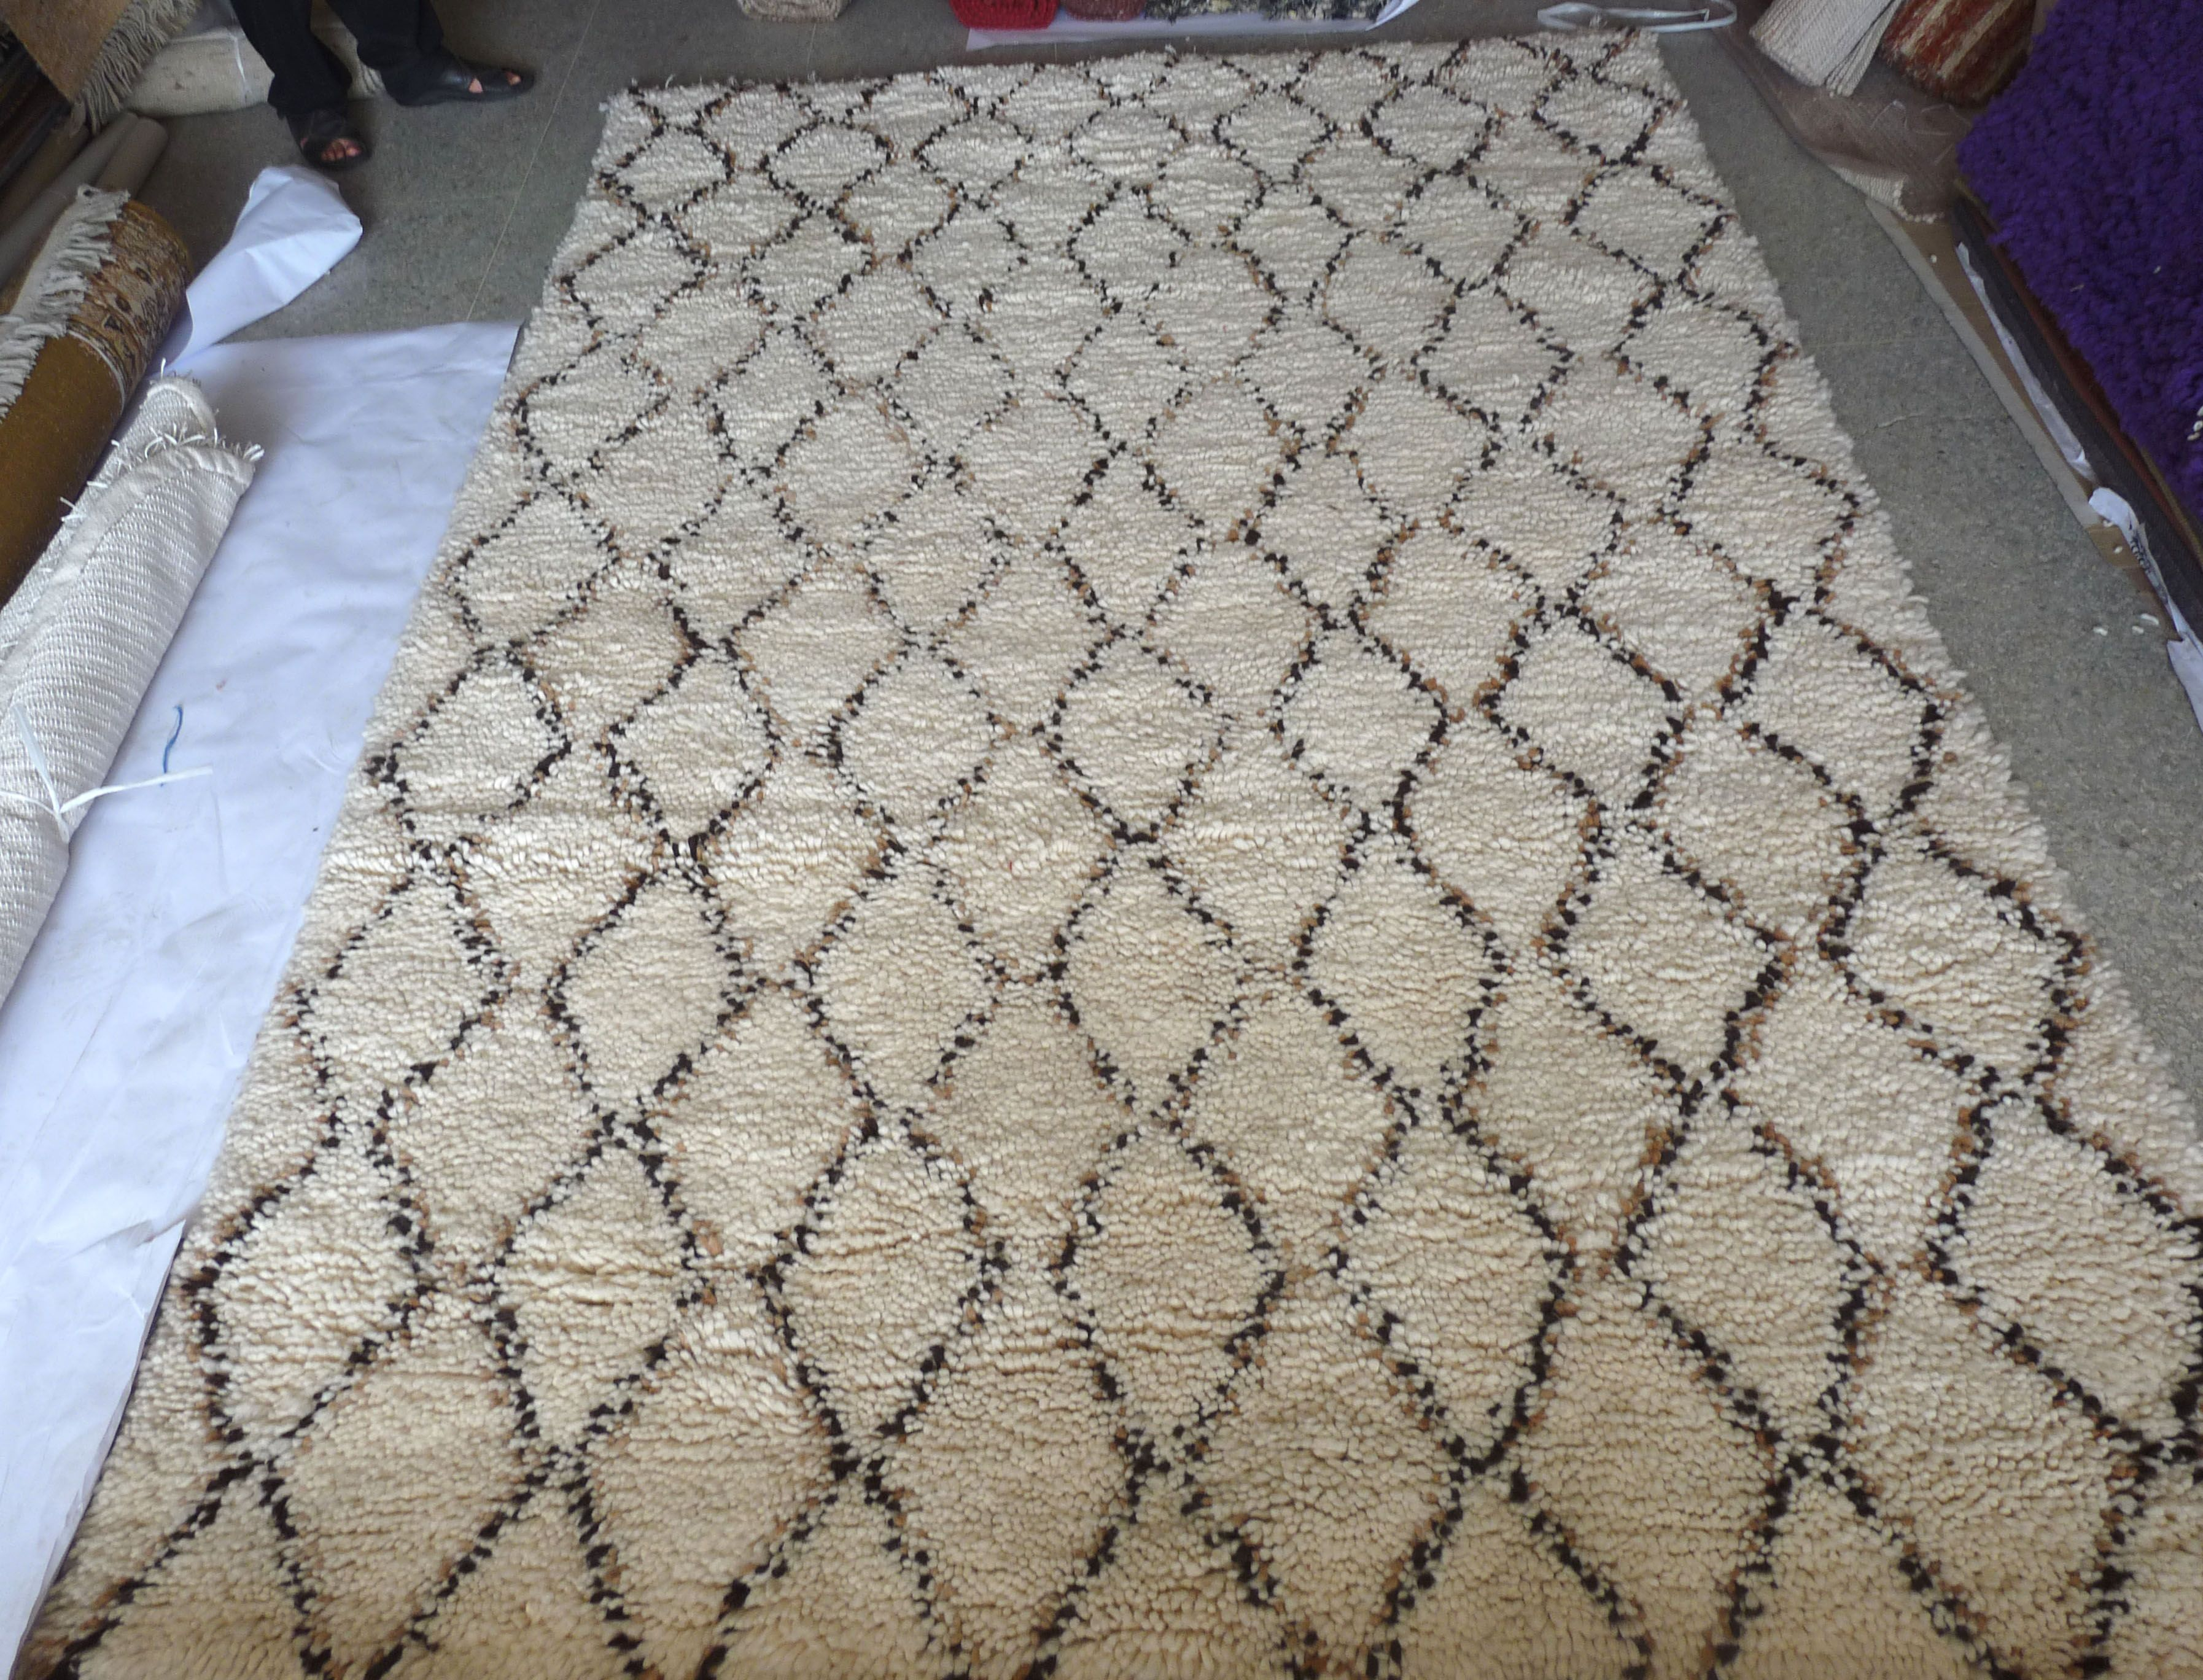 Another shaggy Beni Ouarain piece with a thick granular texture. Typical diamond motifs with black and brownish outlines. Very soft virgin wool! #Beni #Ouarain Moroccan Wool Beni Ouarain #55.